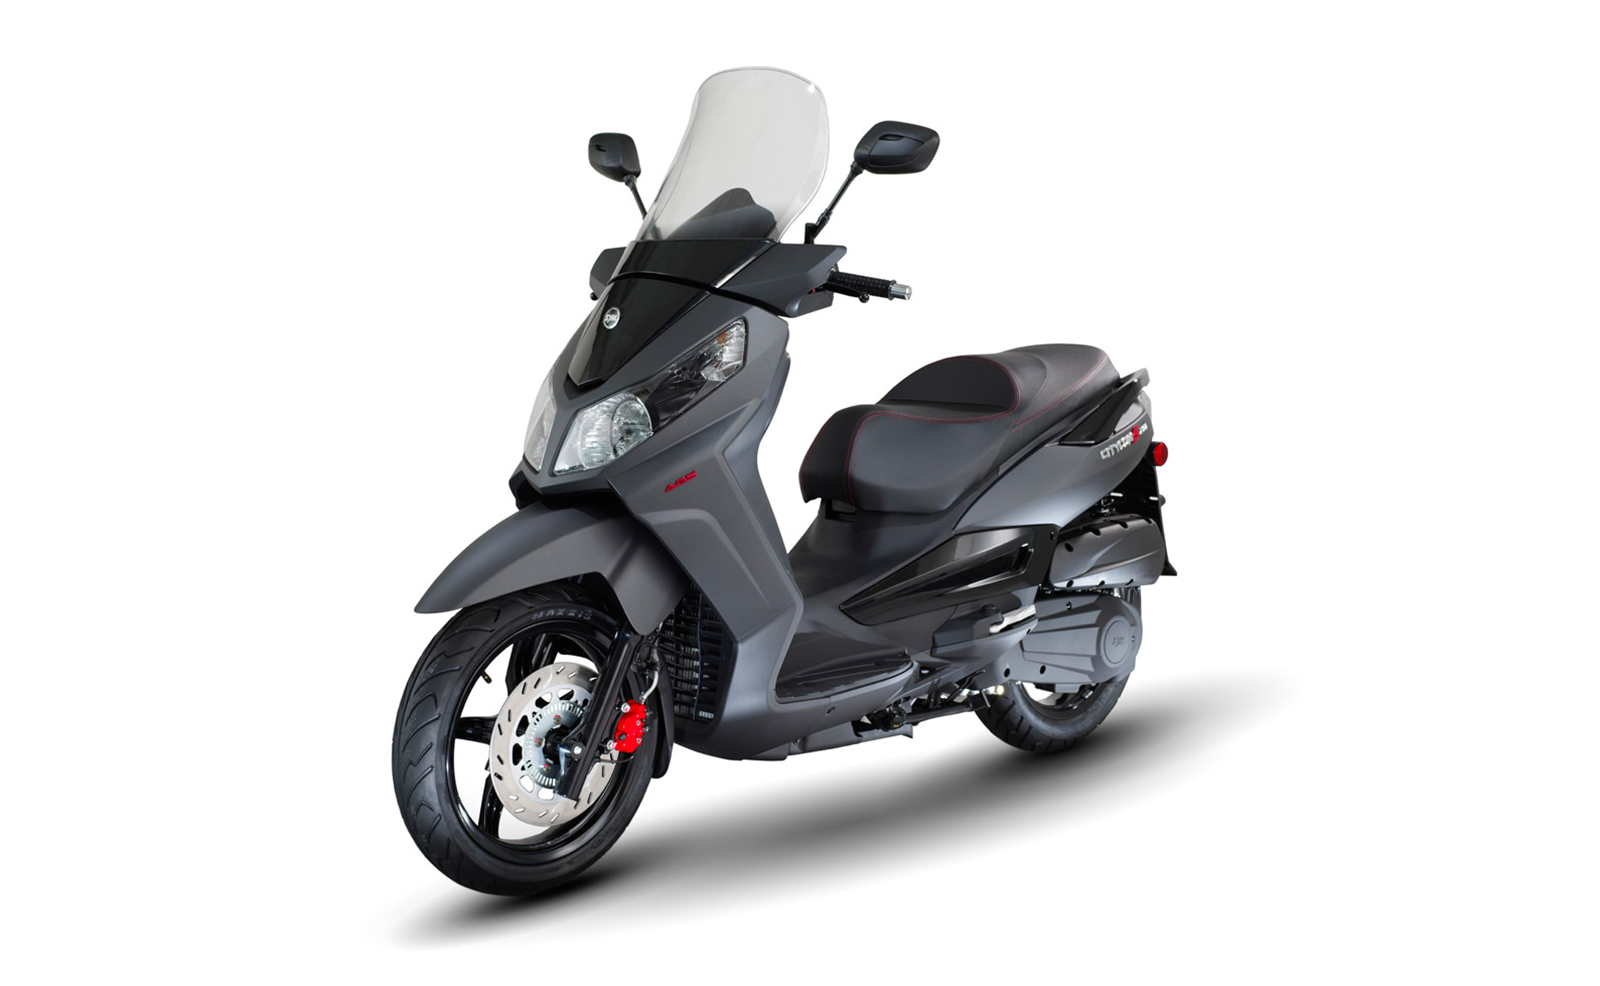 Sym Citycom 300cc Alex Rent A Car